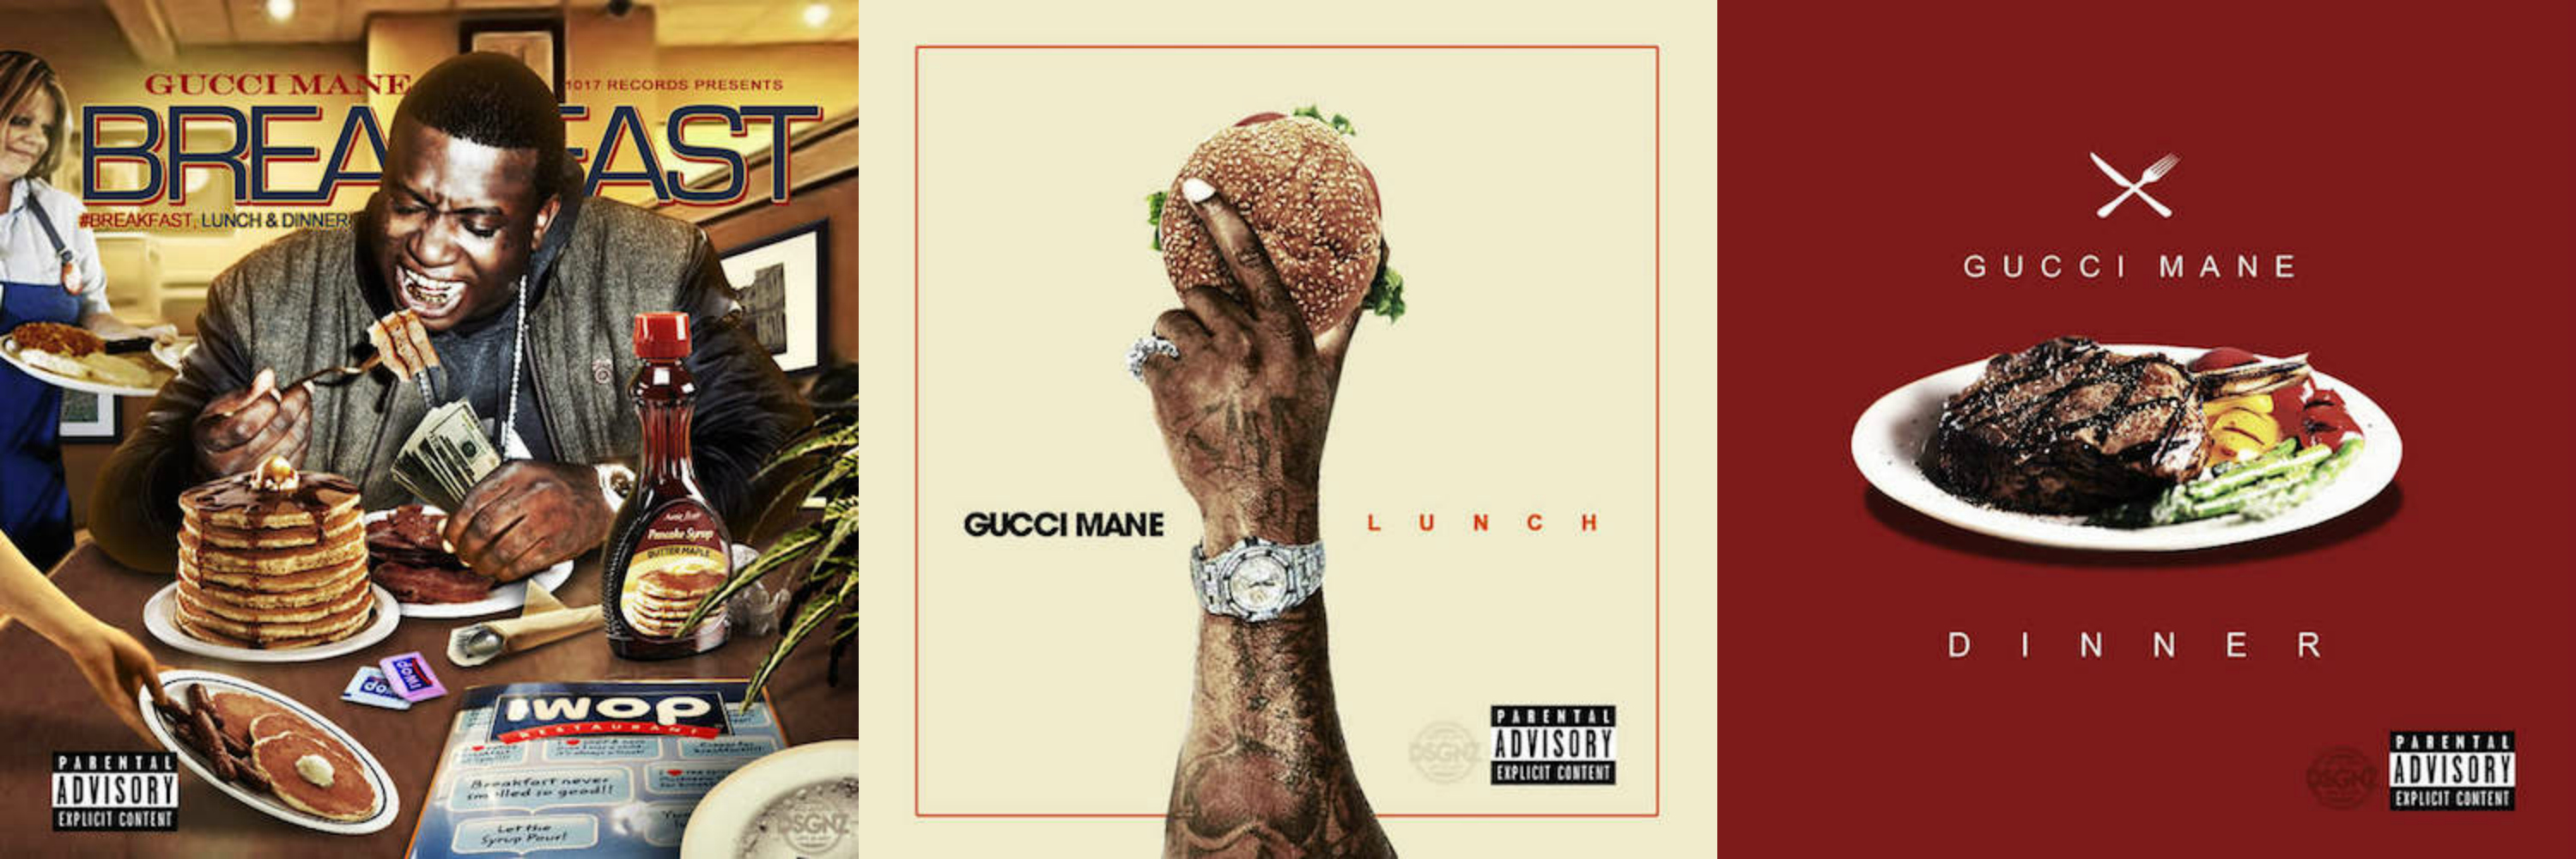 gucci-mane-breakfast-lunch-dinner-covers